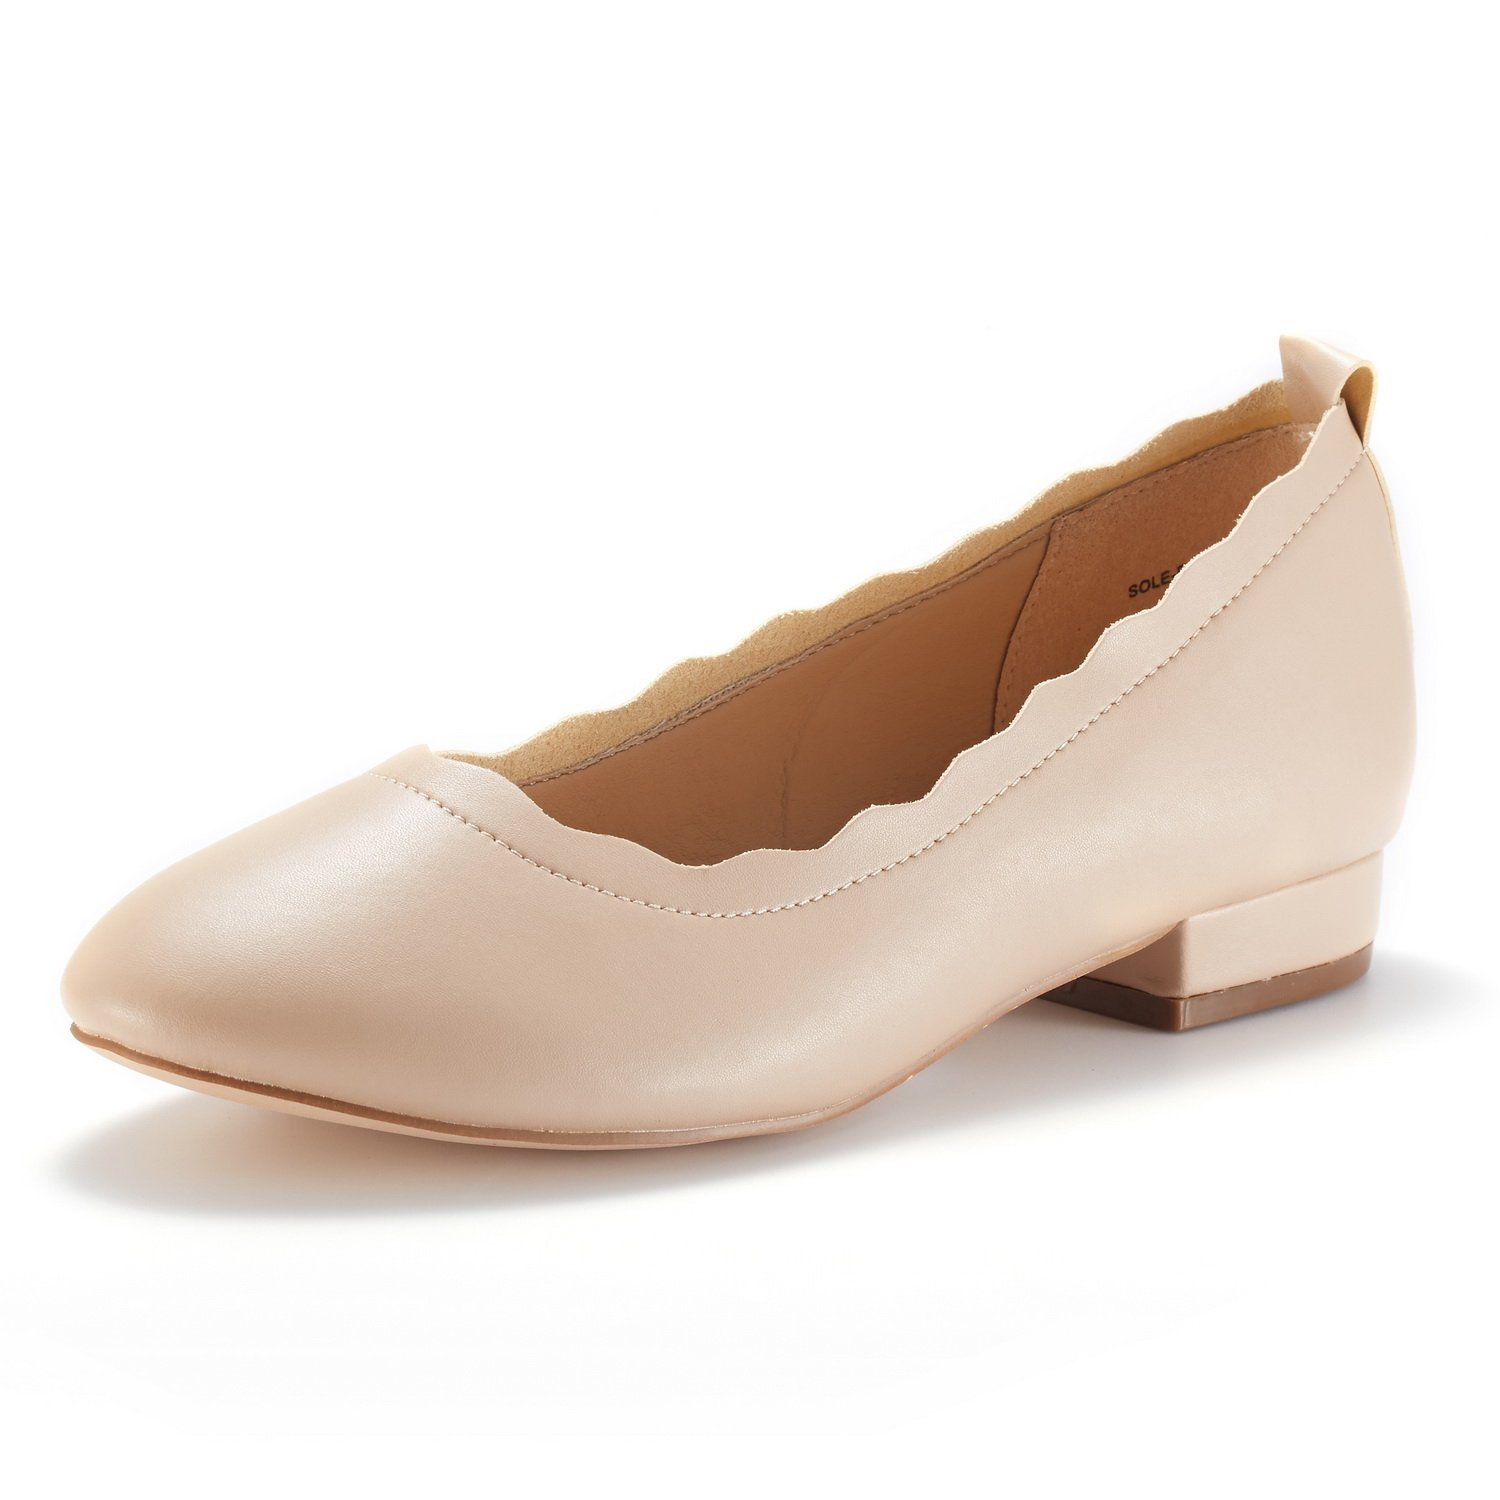 DREAM PAIRS Women's Sole_Elle Nude/PU Fashion Low Stacked Slip On Flats Shoes Size 8 M US